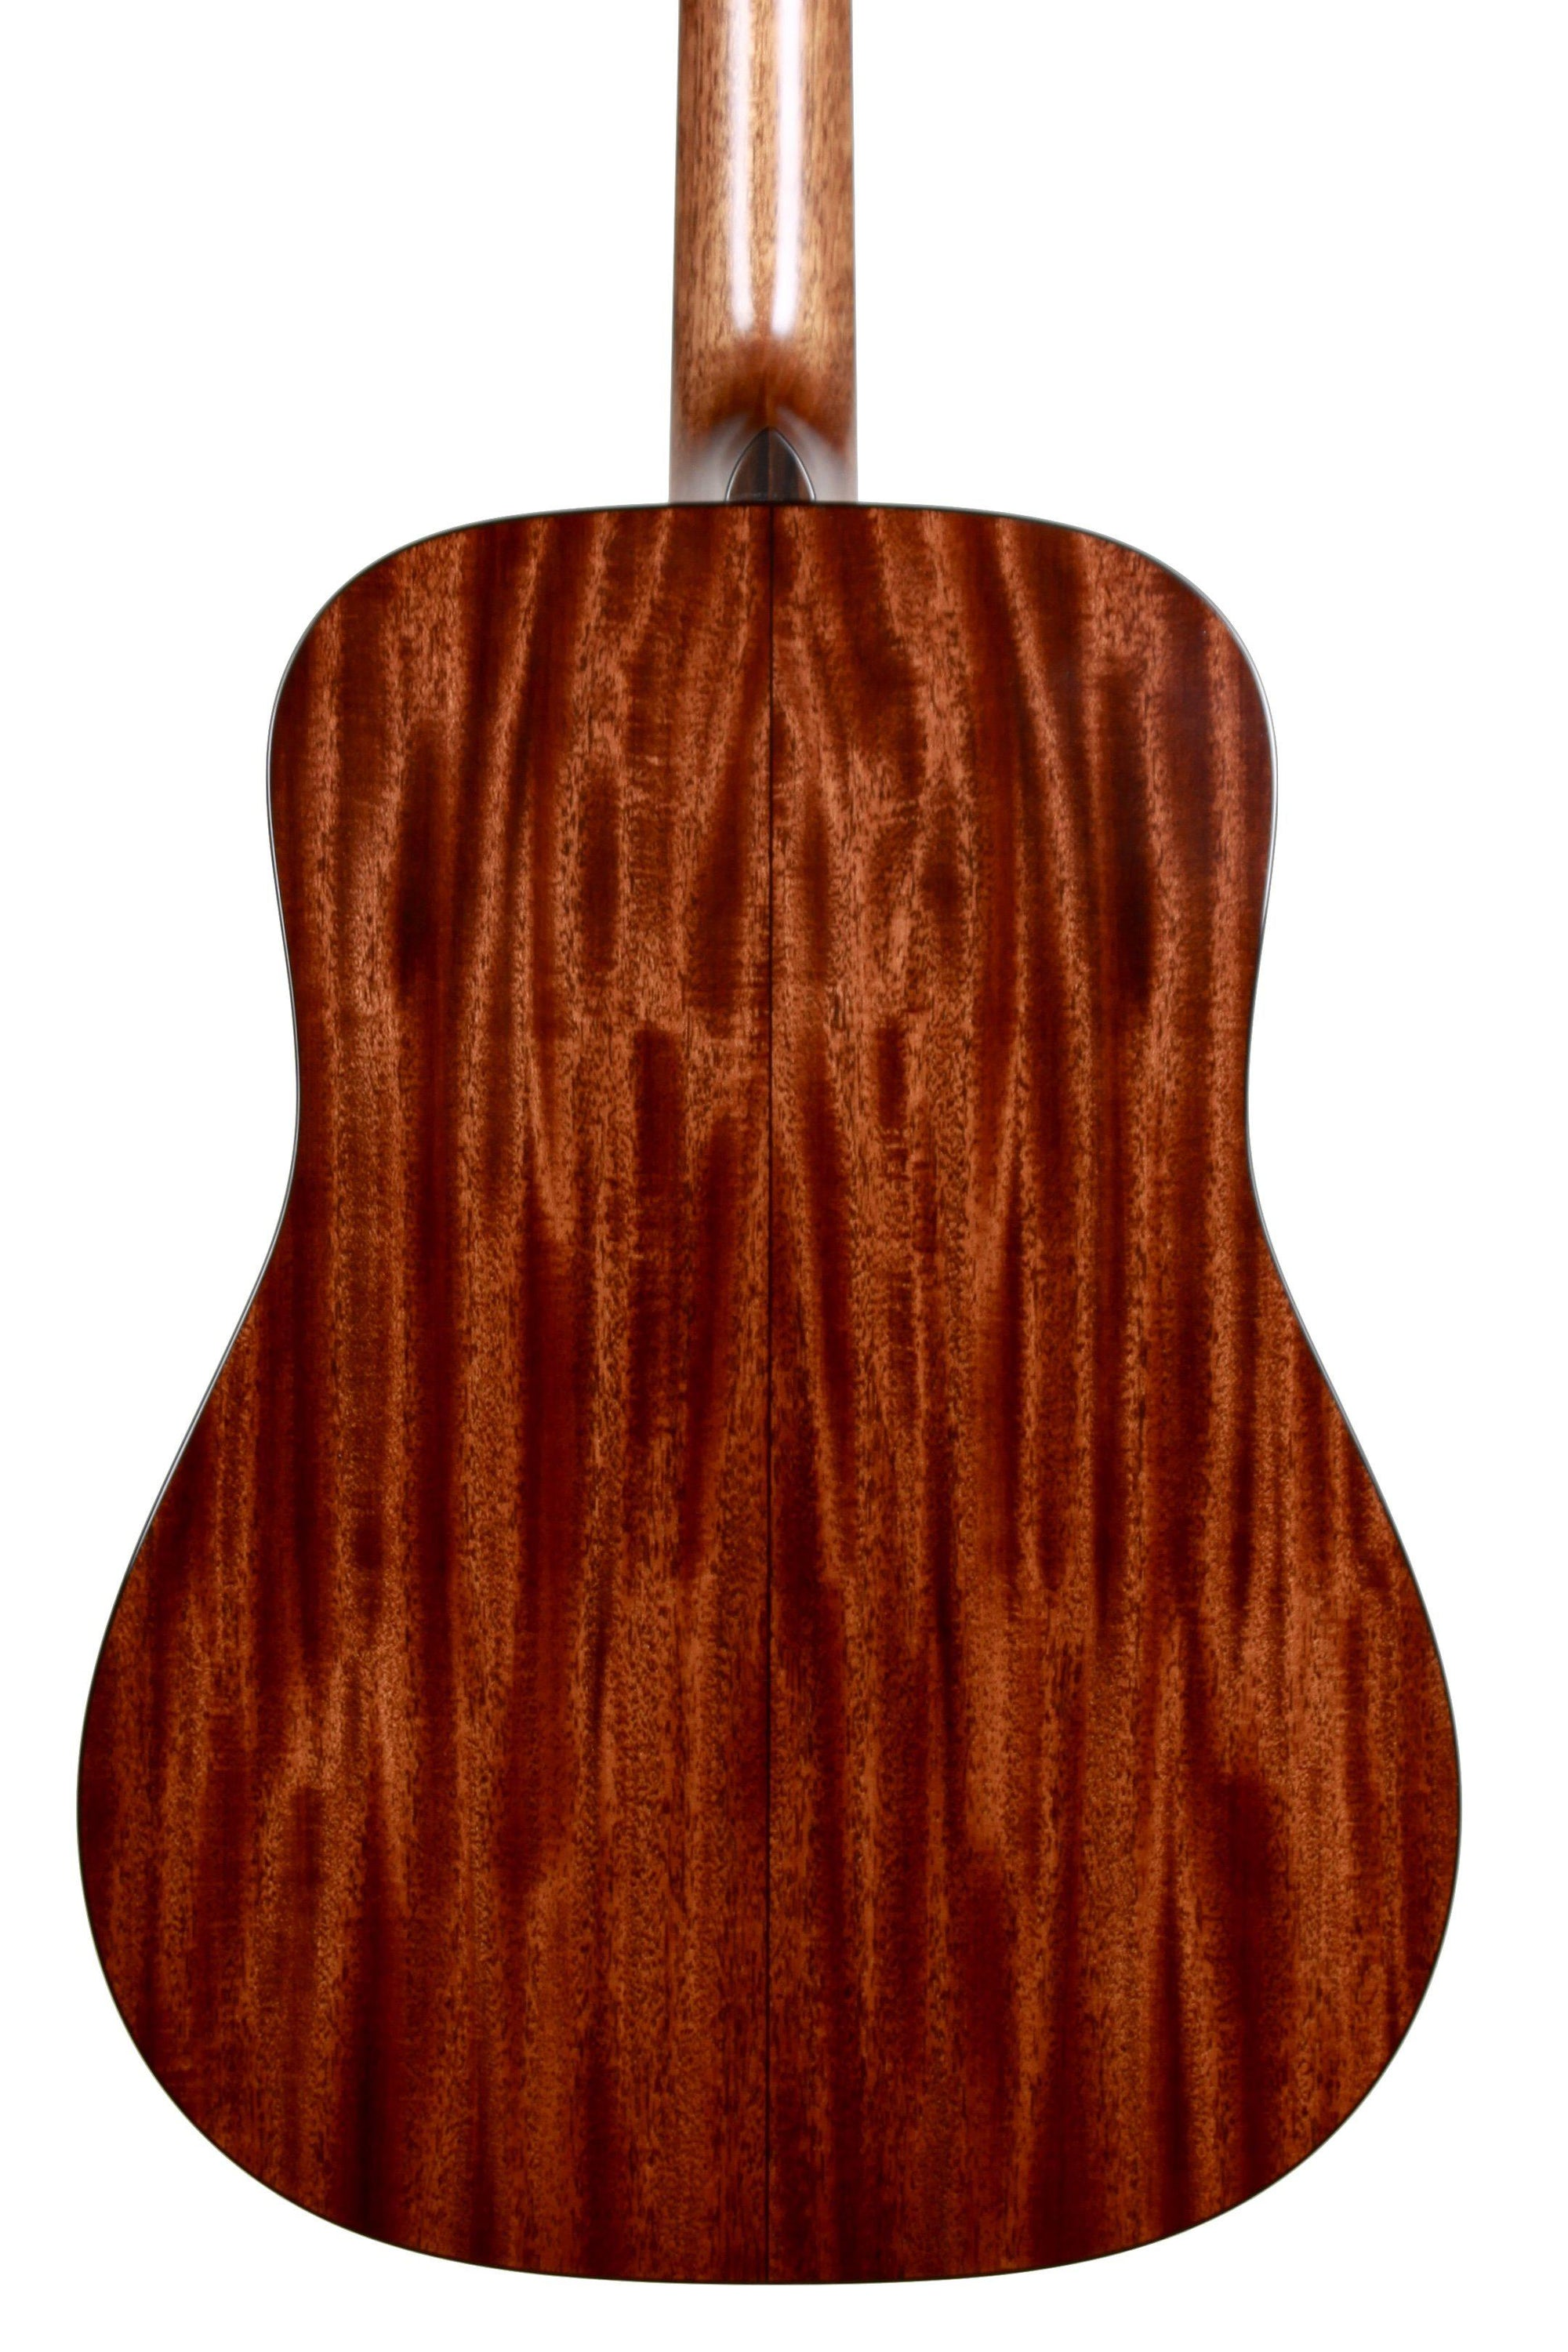 Bourgeois D Figured Mahogany Dreadnought Custom #8267 - Bourgeois Guitars - Heartbreaker Guitars